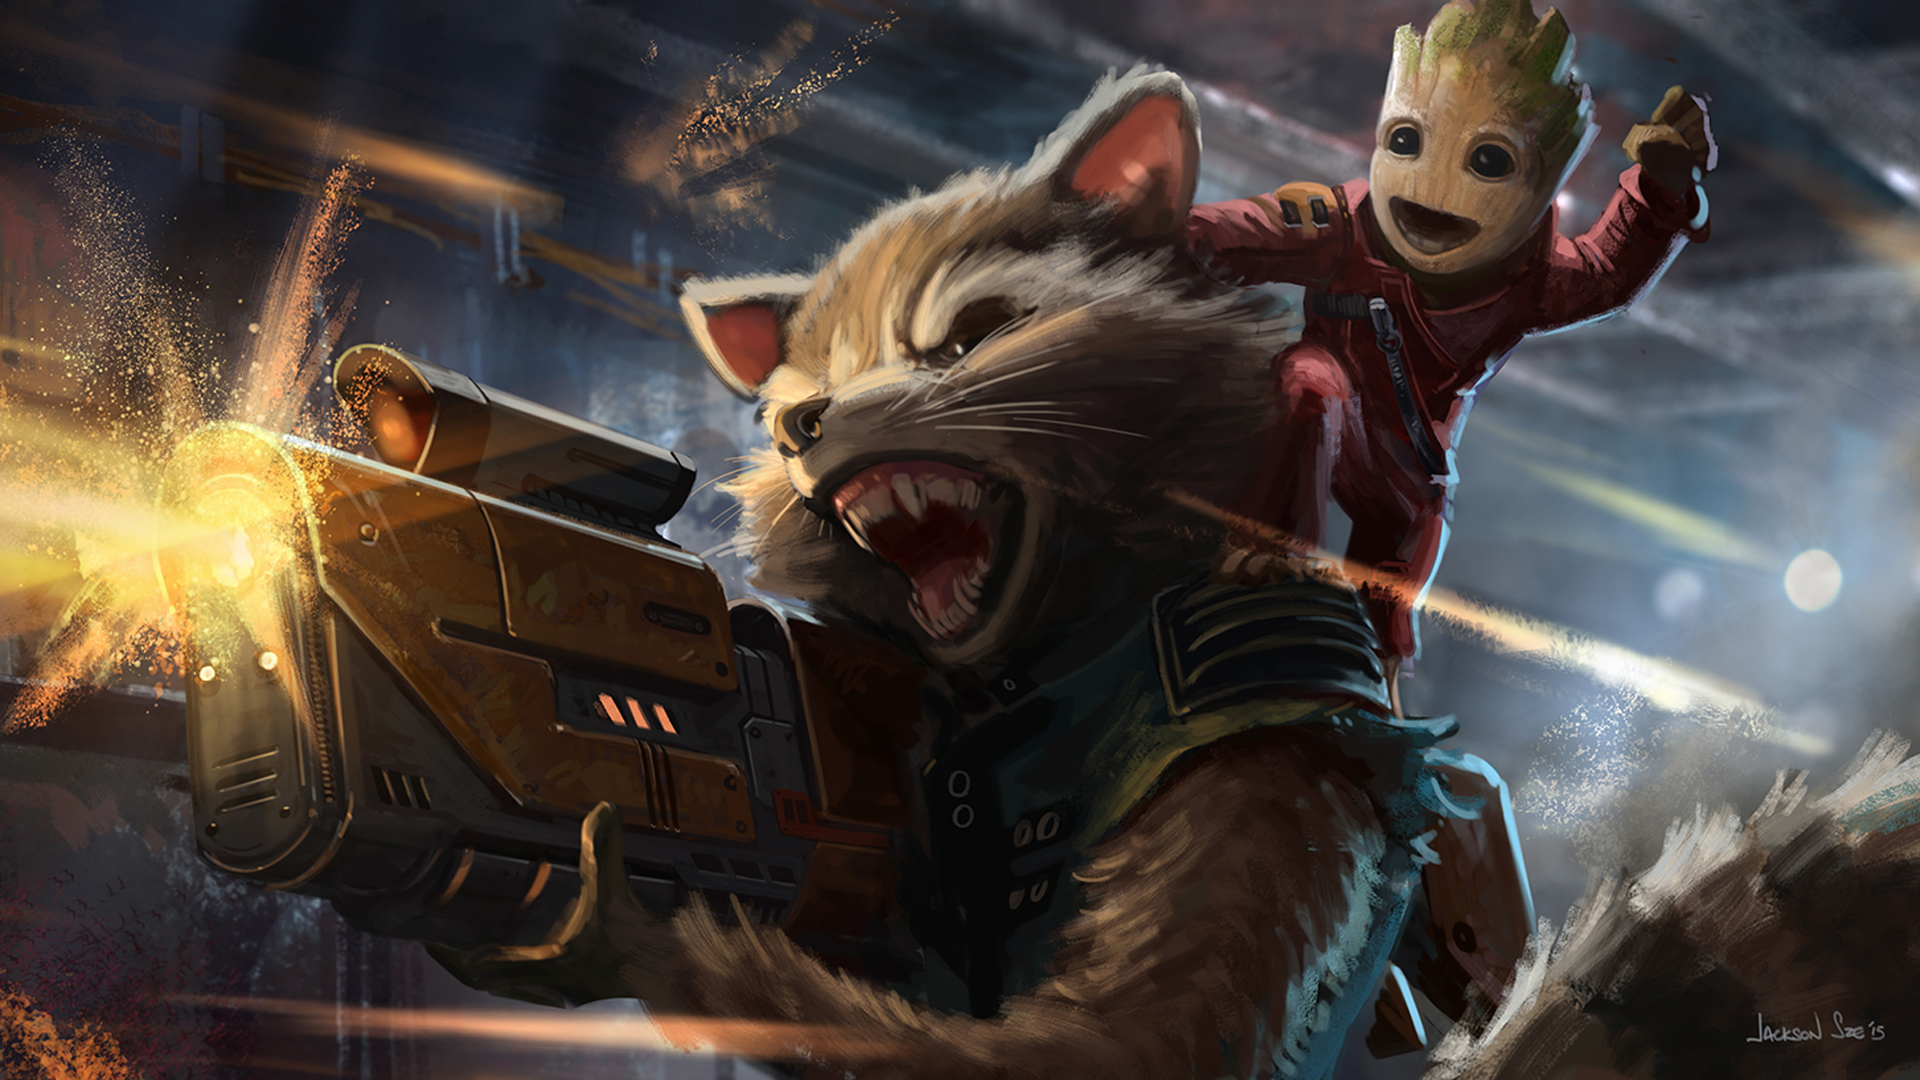 Cute Indian Baby Images For Wallpaper Baby Groot And Rocket Raccoon Artwork Hd Movies 4k